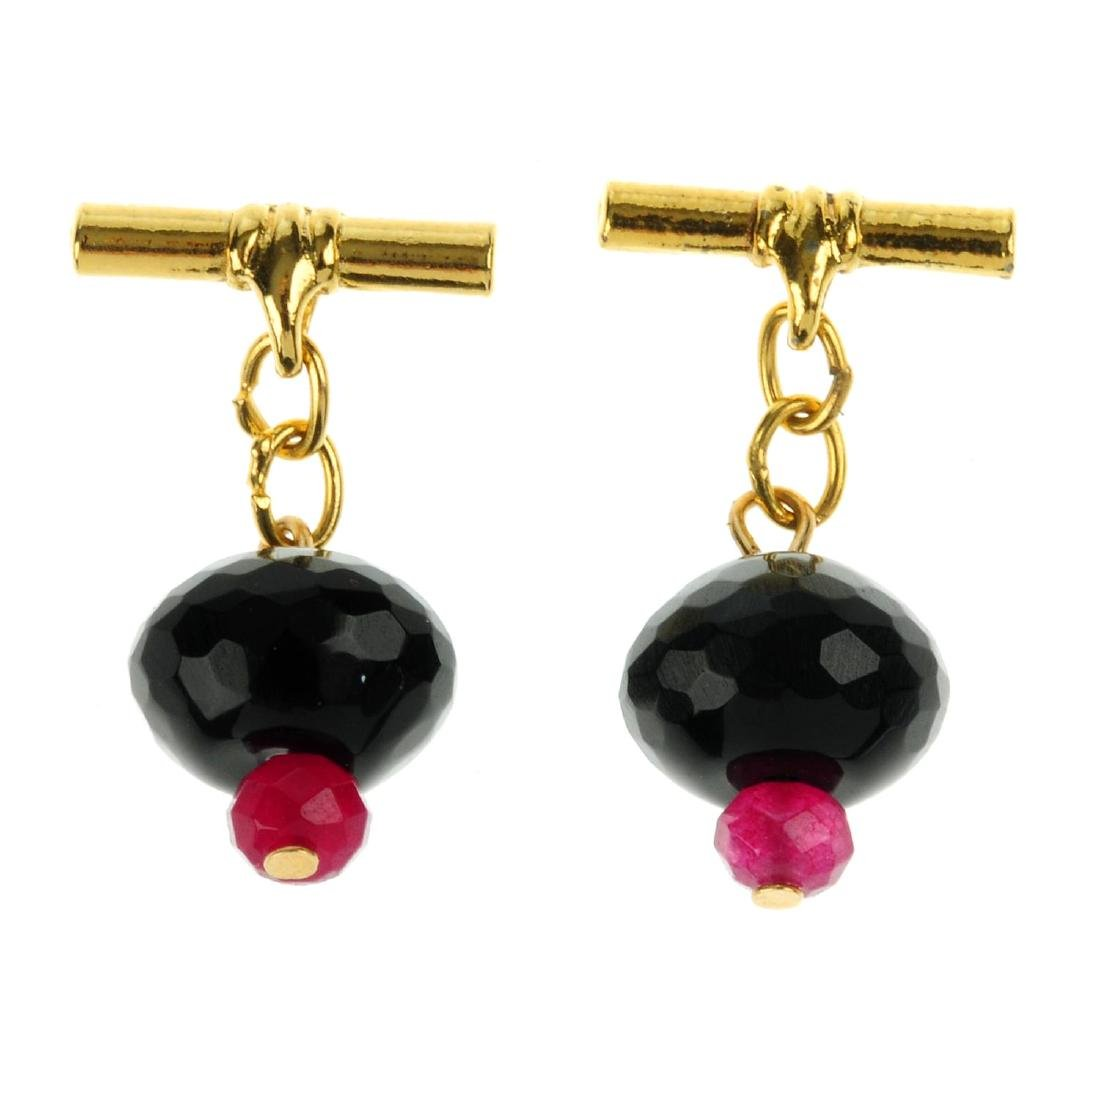 A pair of gem cufflinks. Designed as faceted onyx